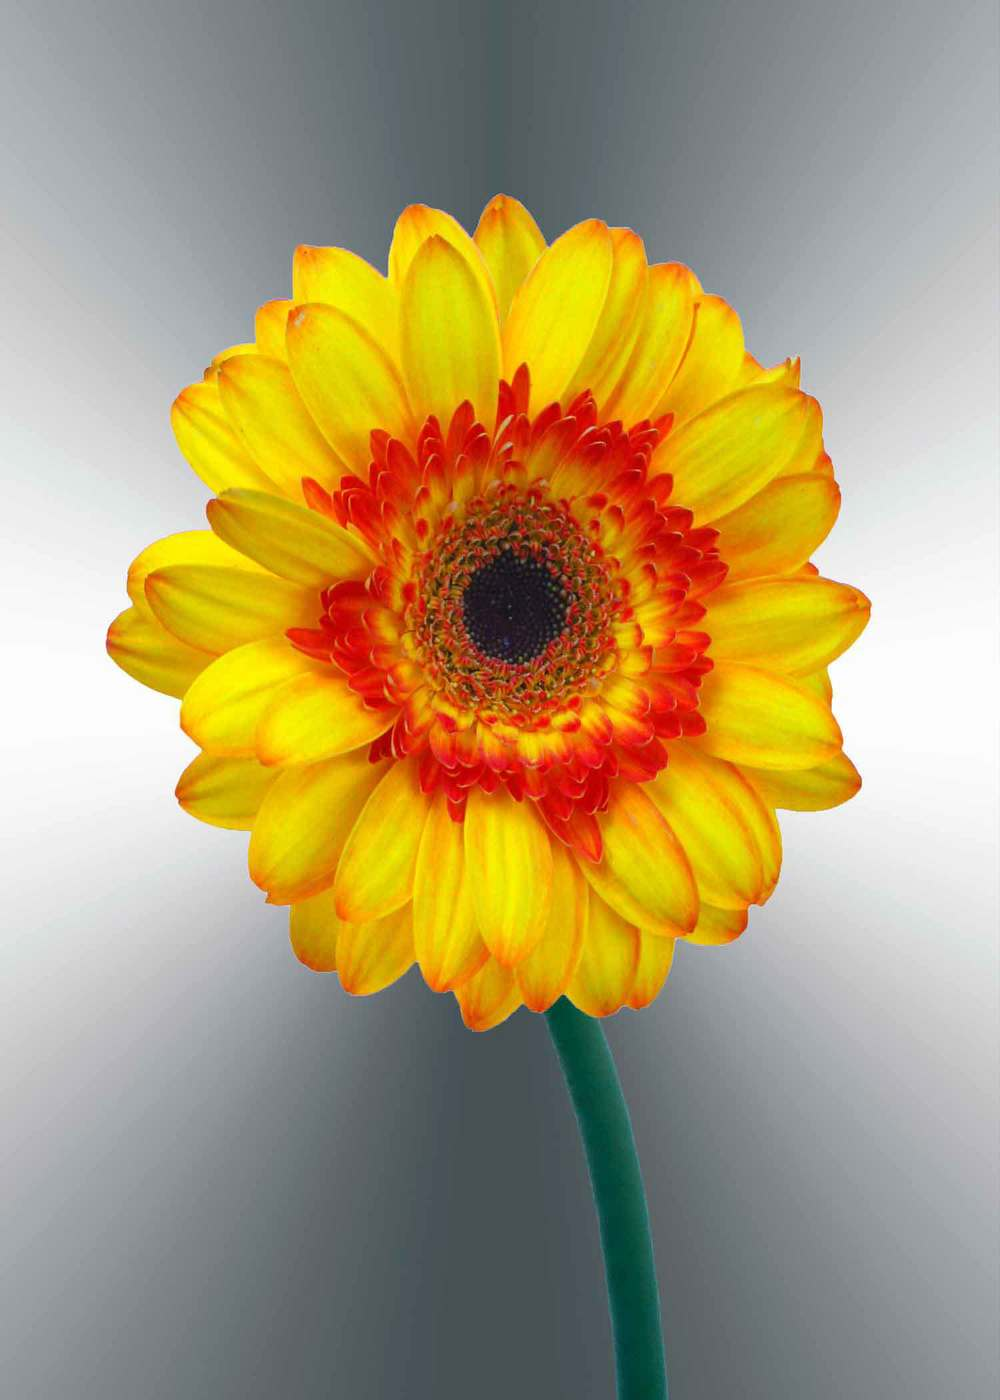 yellow-gerger-daisy-5x7-(22-of-236)-Edit-3-copy-2.jpg